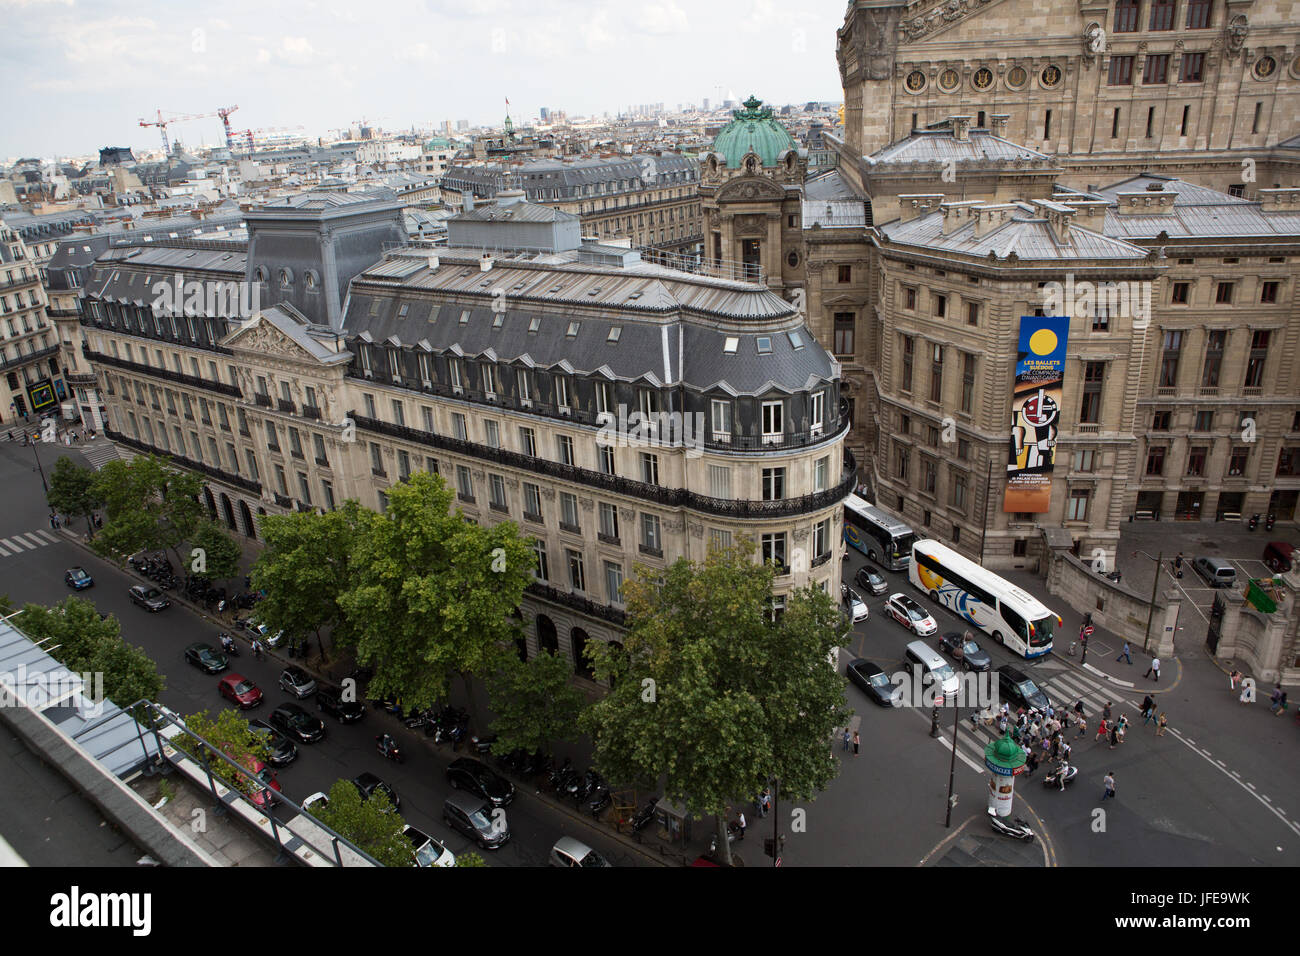 Traffic and pedestrians fill the roads near the Paris Opera House, Garnier Palace. - Stock Image